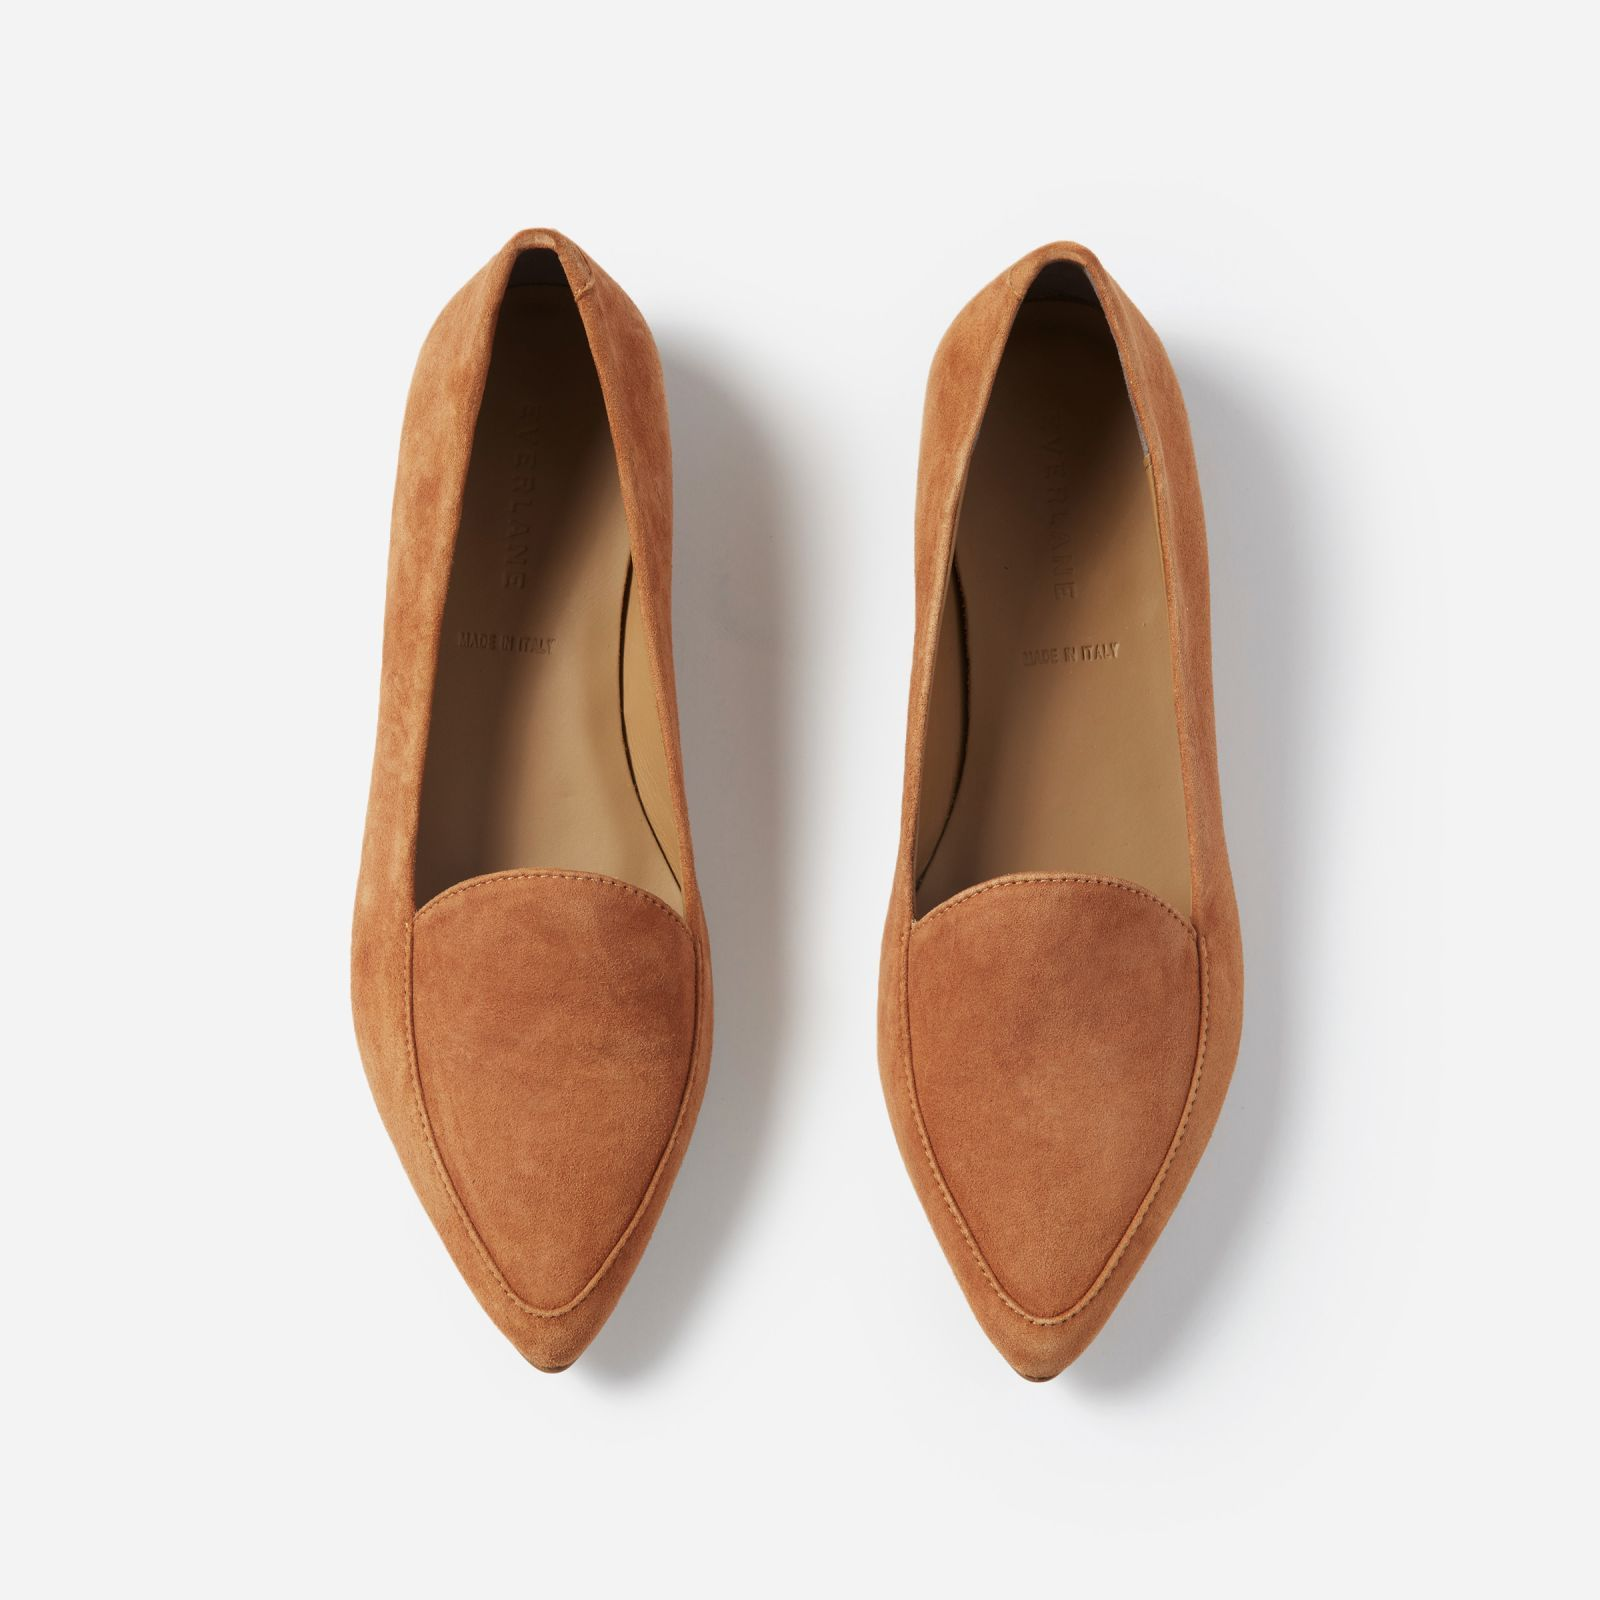 52fa3c7b525 Women s Leather Flats by Everlane in Cognac Suede